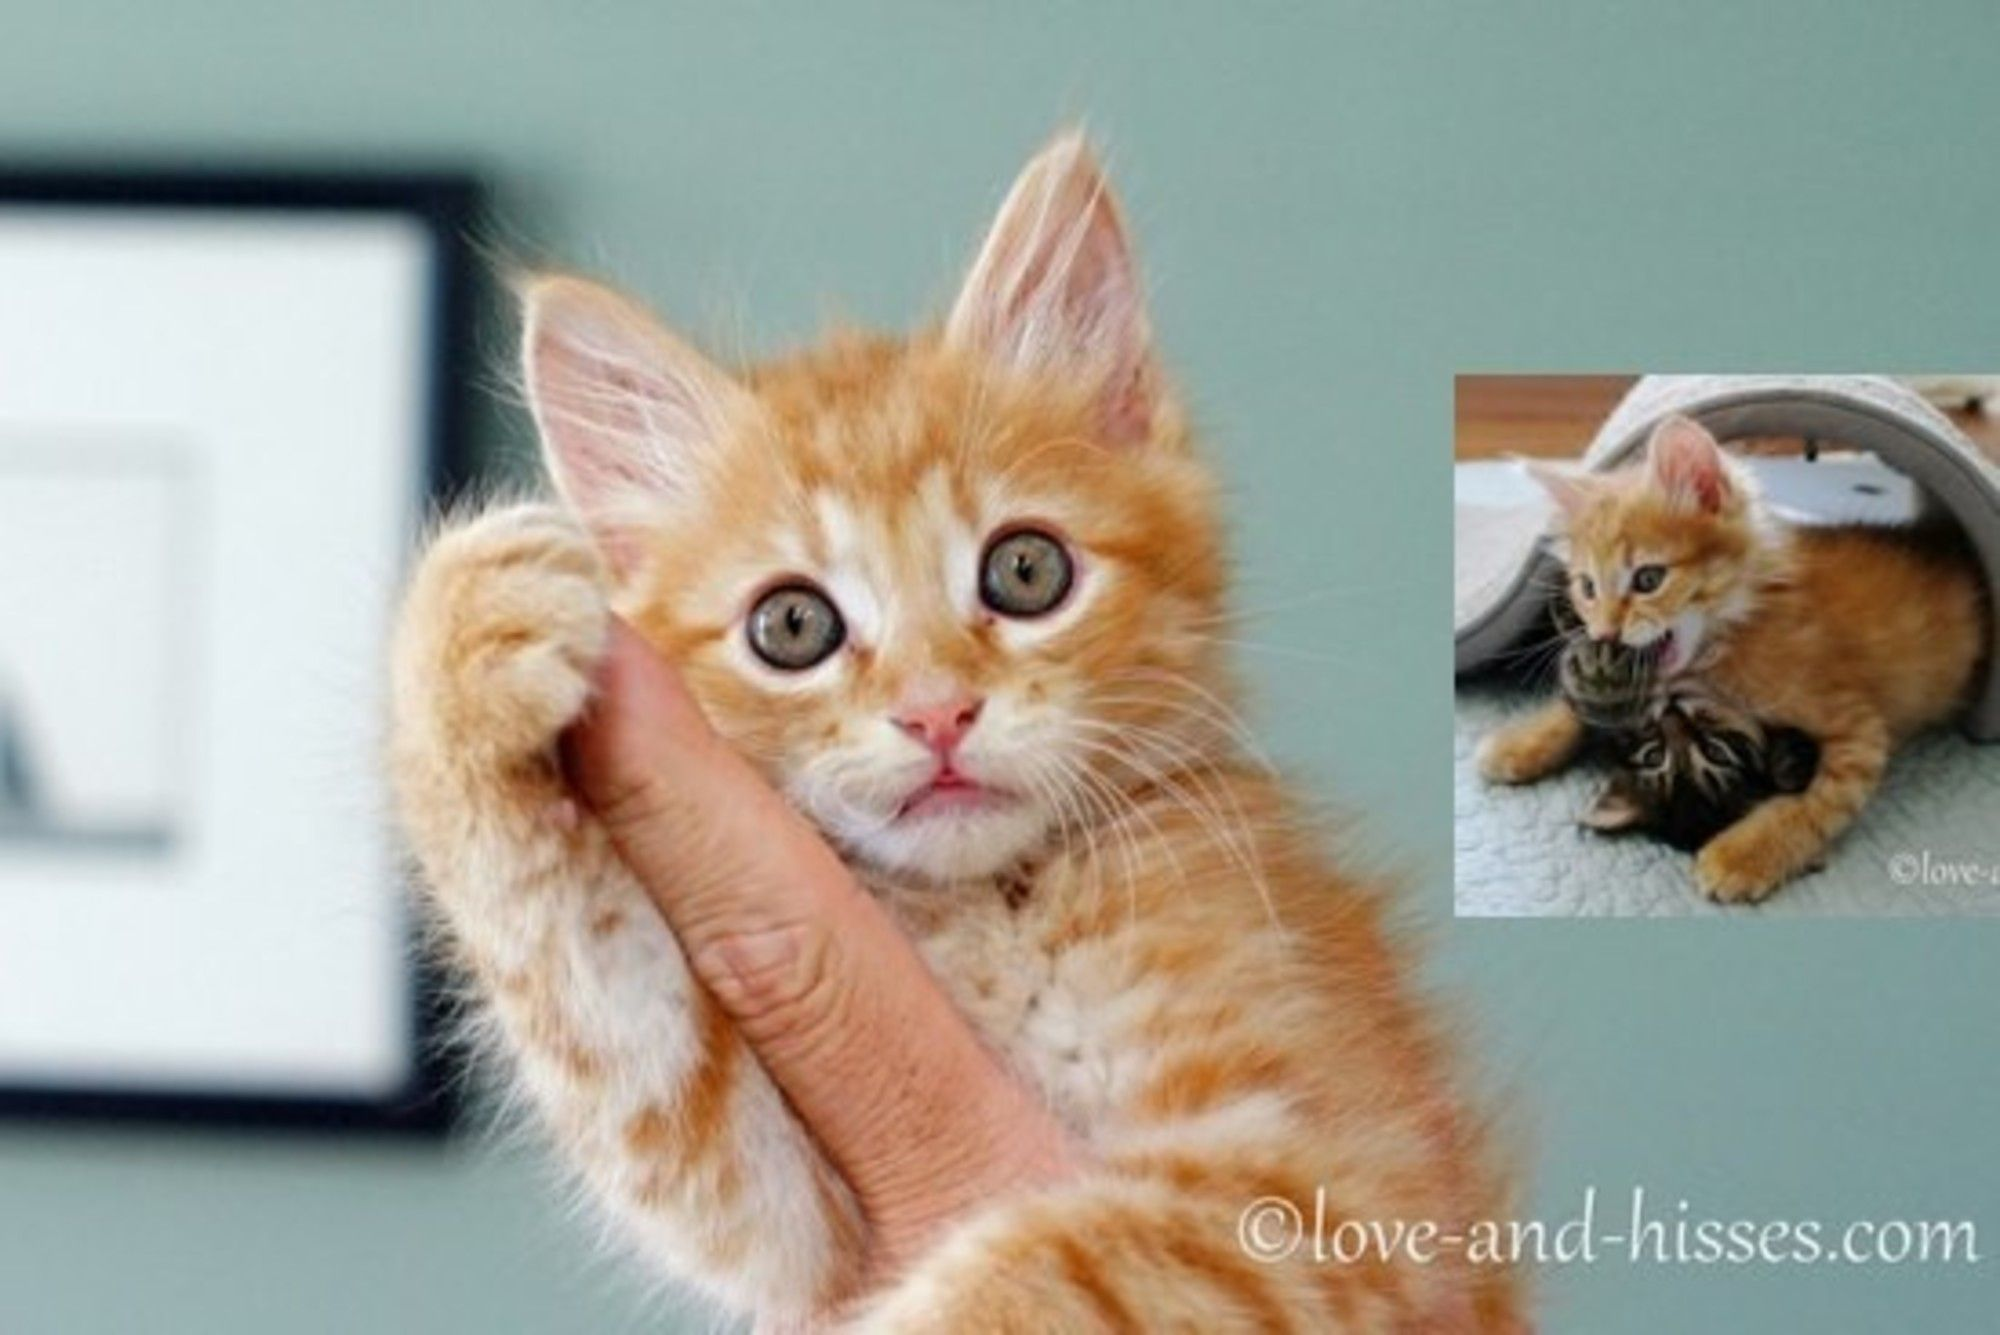 When A Rescue Ginger Kitten Who Desperately Needed Friends Was Introduced To A Litter Of Kittens He Became The Ha Ginger Kitten Kittens Cutest Kitten Rescue